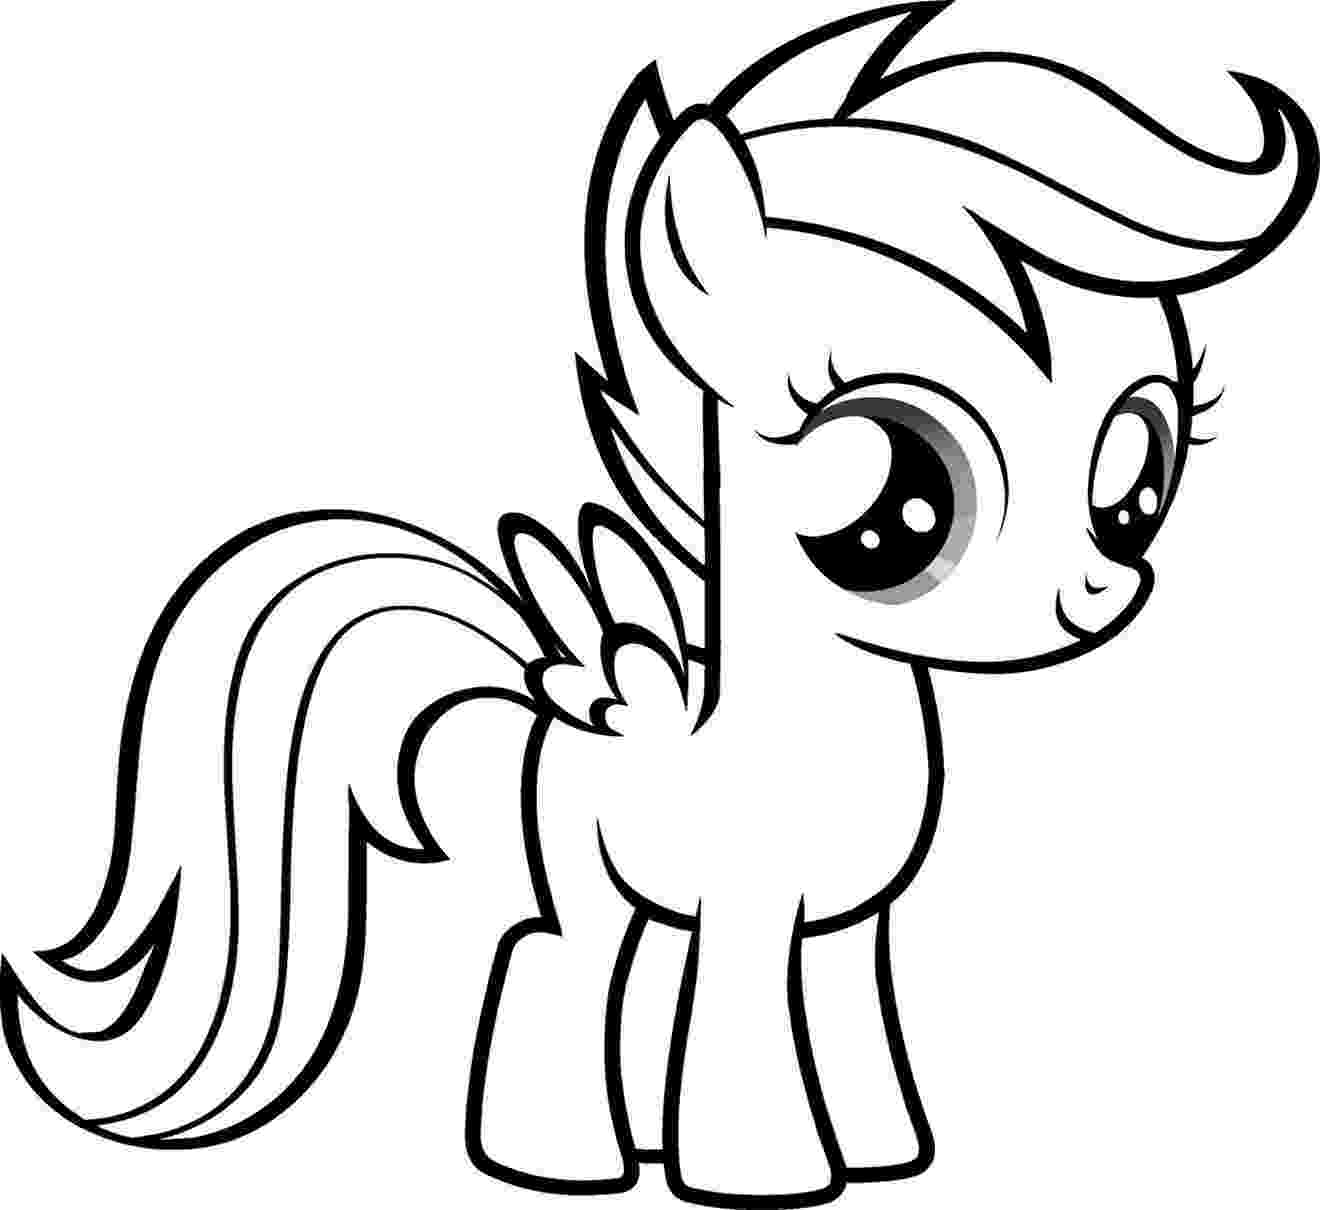 colouring pages of cartoon characters 8 cartoon coloring pages jpg ai illustrator download characters pages colouring cartoon of